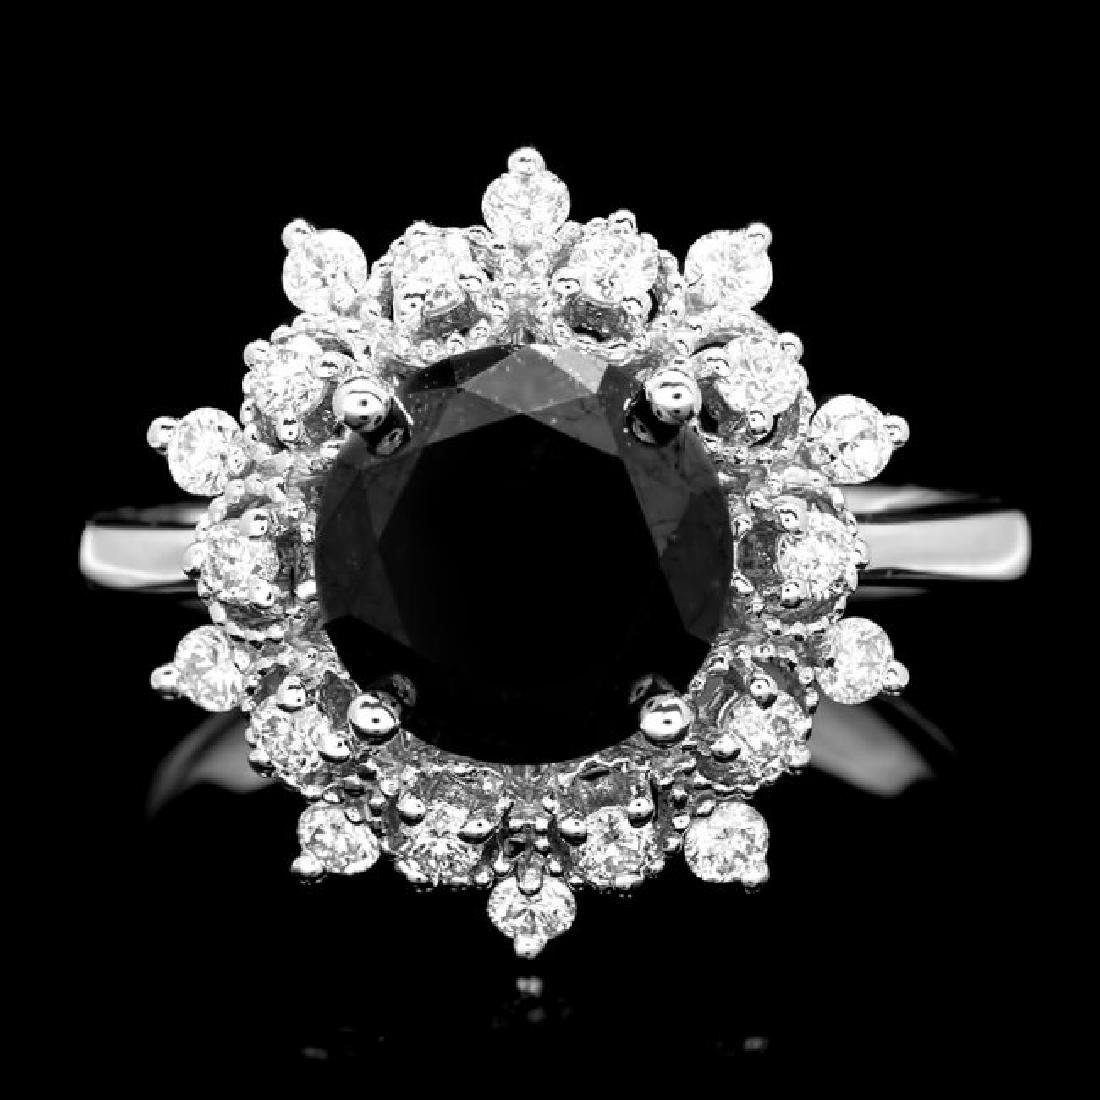 14k White Gold 2.8ct Diamond Ring